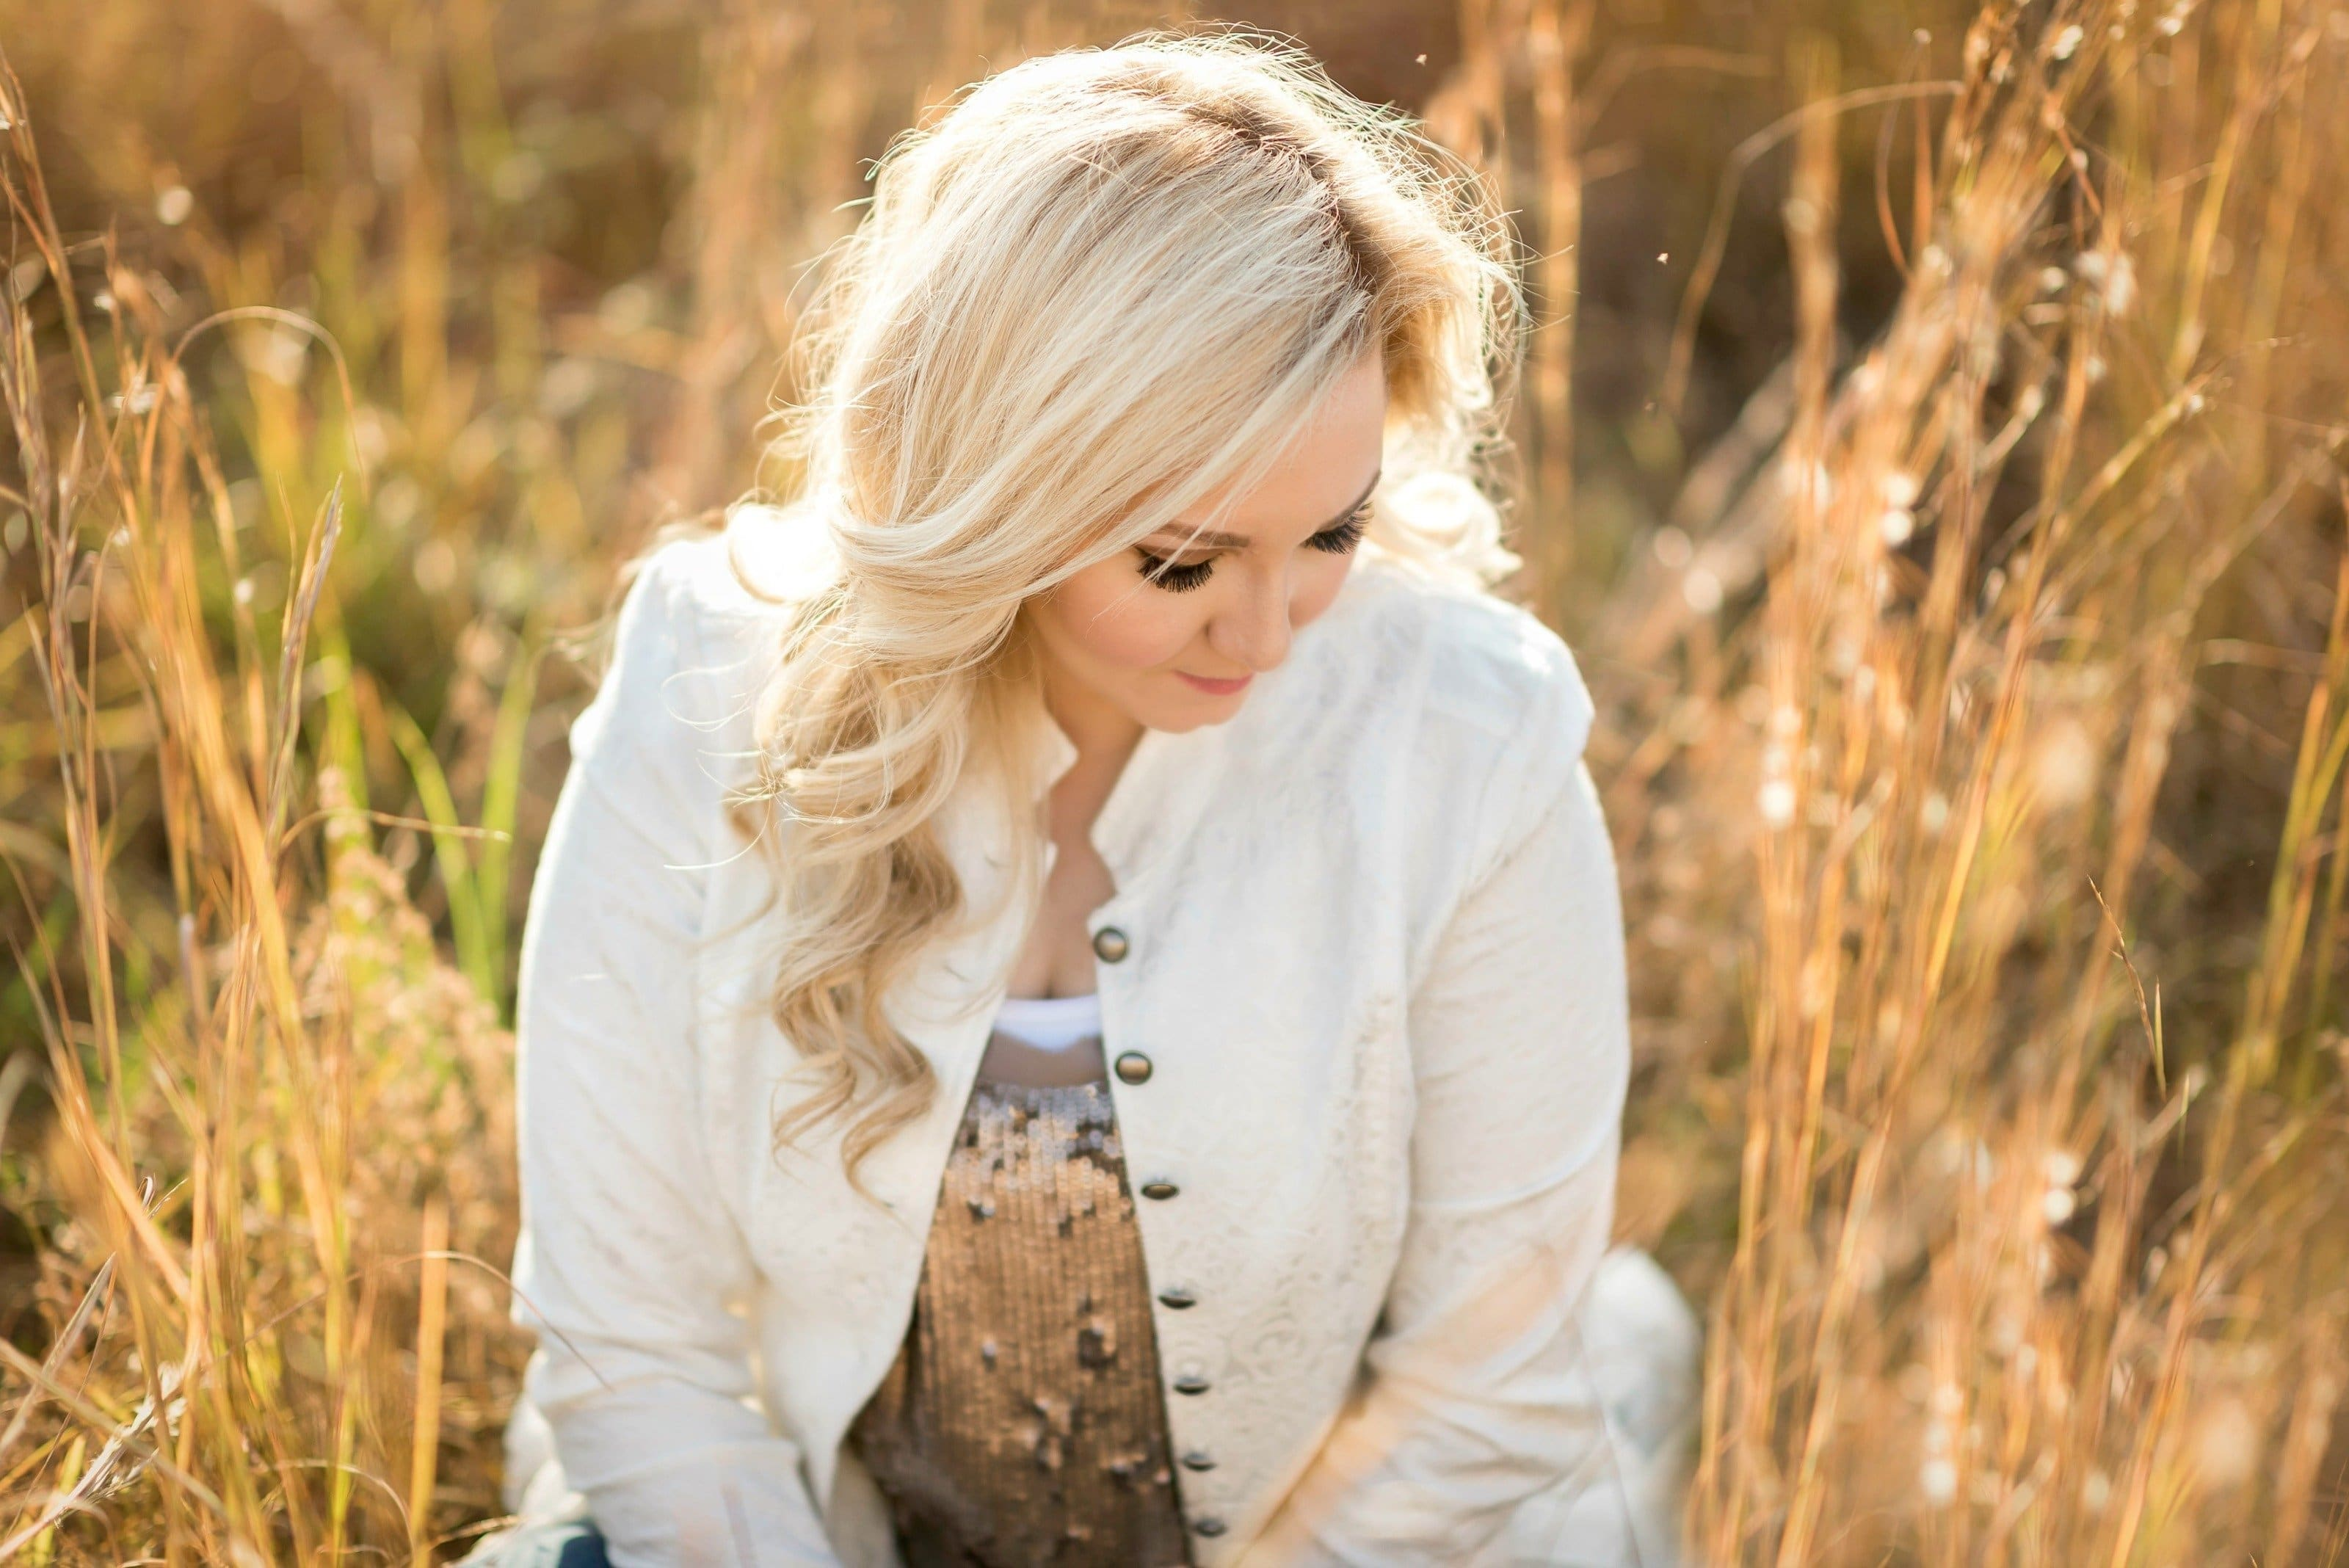 Read more about the article Singer Morgan White expecting a baby girl